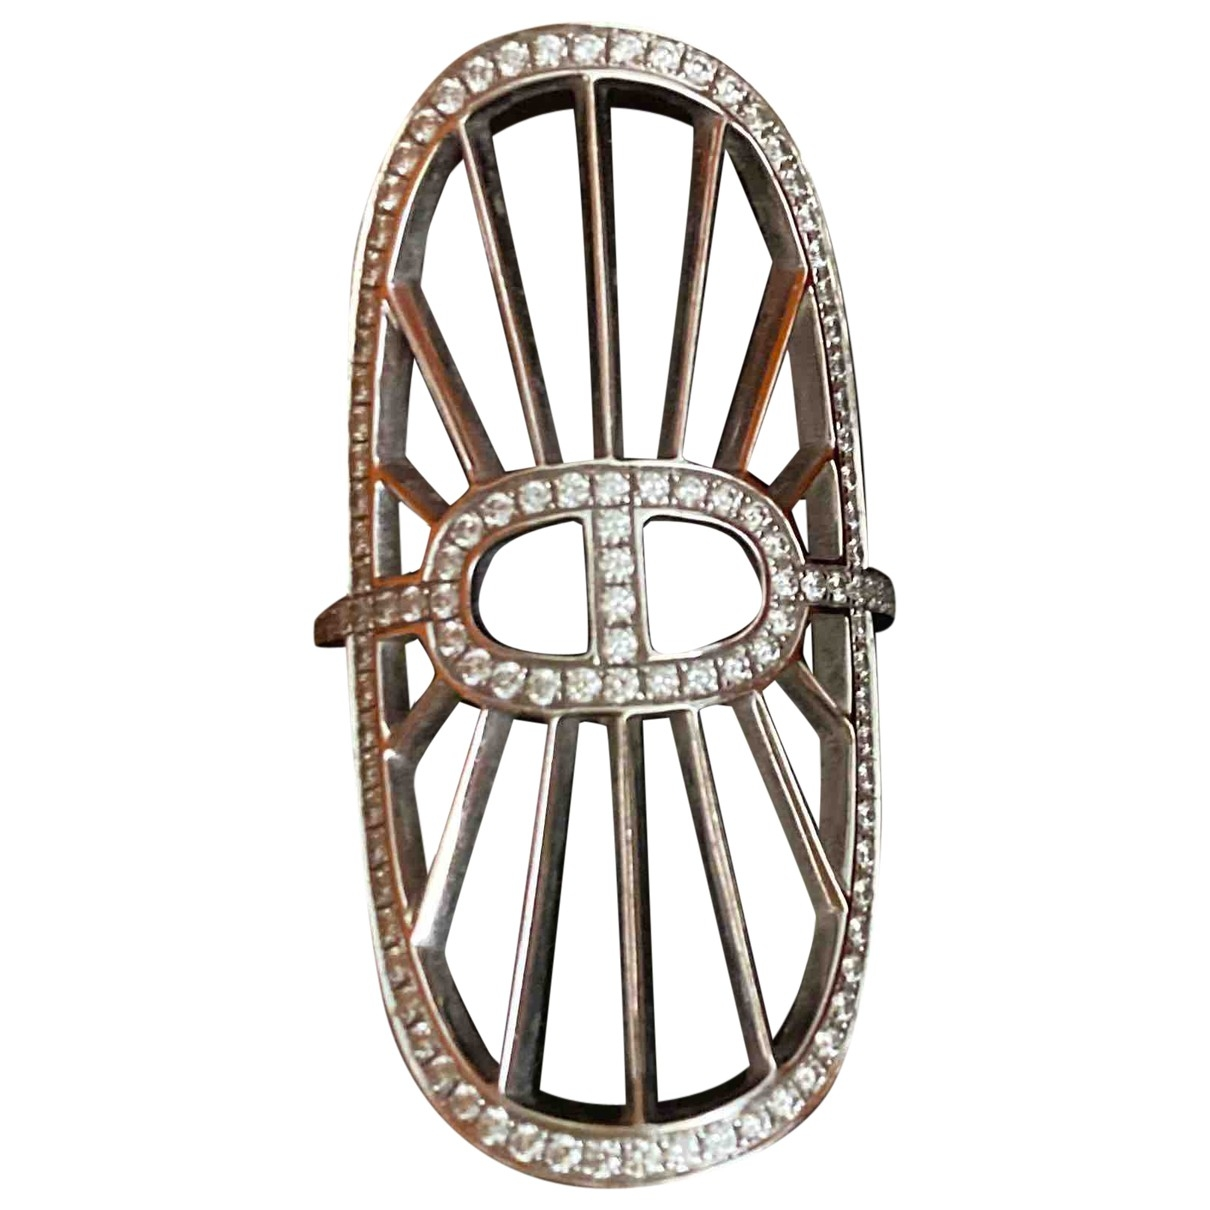 Hermes \N Ring in  Weiss Weissgold